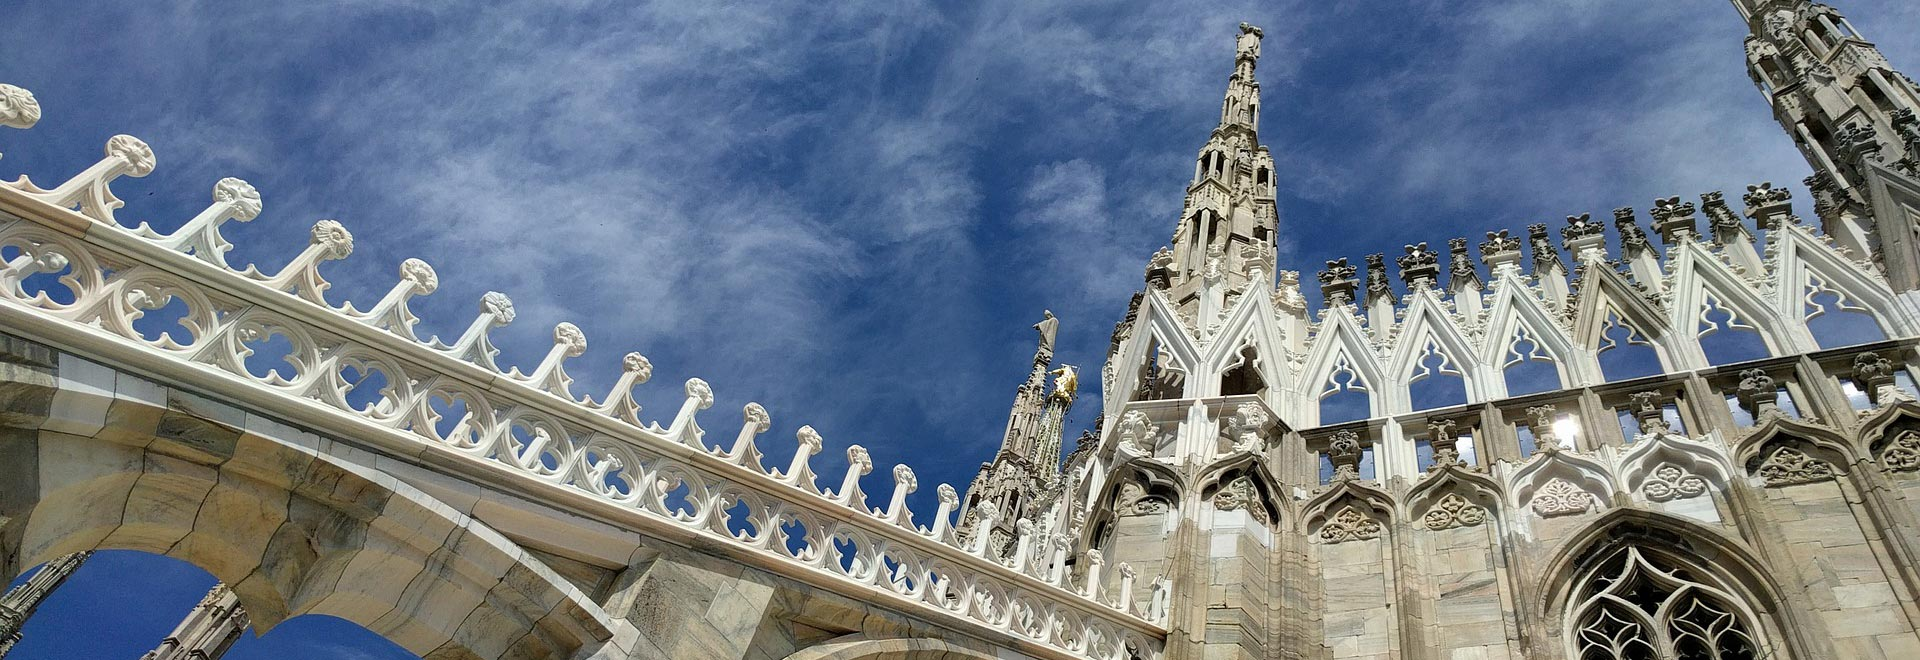 What To Do in Milan Italy: 10 Activities You Don't Want to Miss